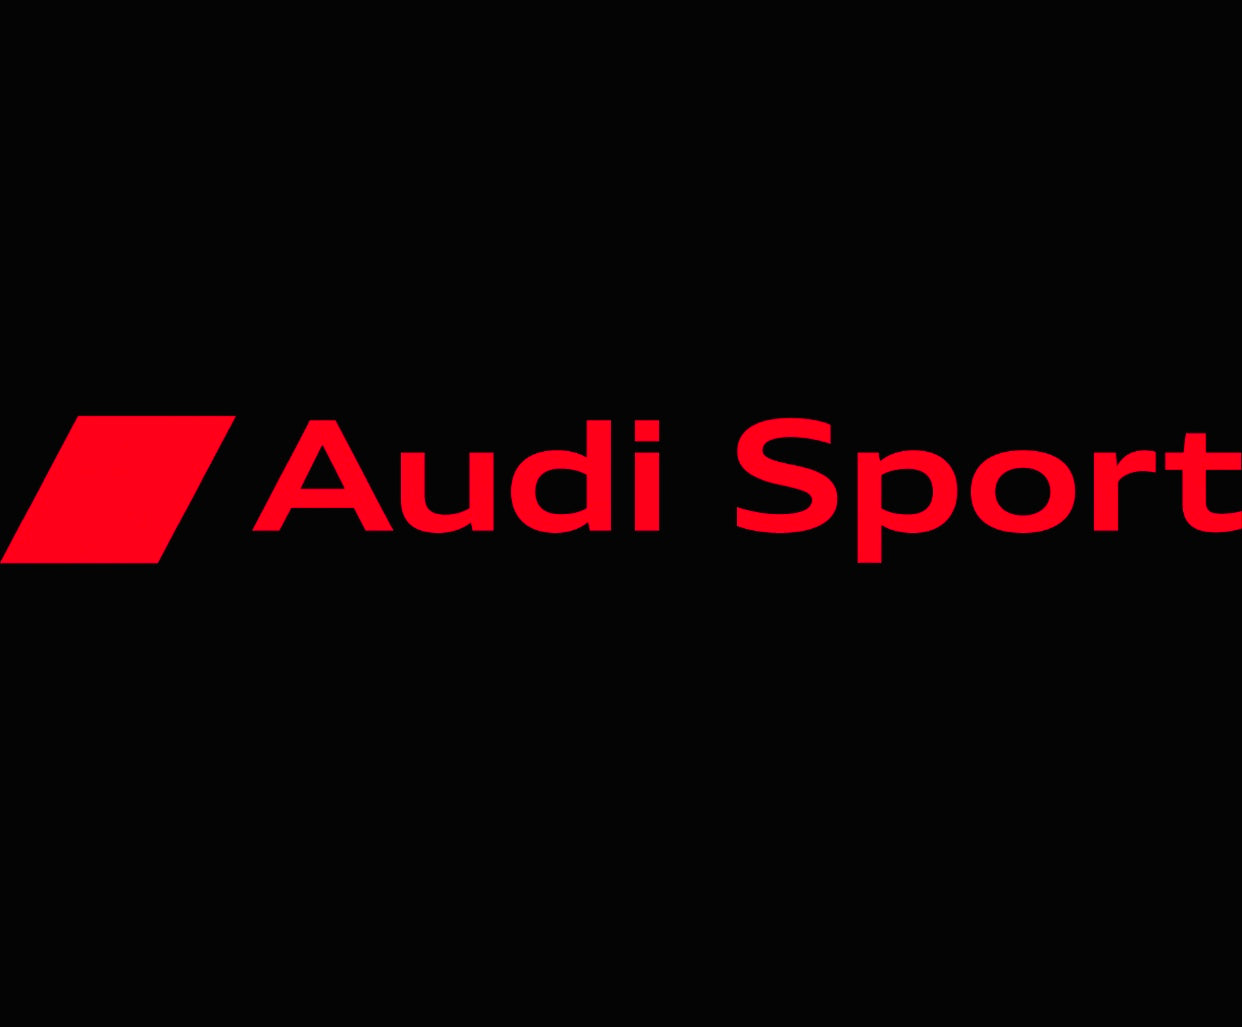 AUDI  LOGO PROJECTOT LIGHTS Nr.111  (quantity 1 = 2 Logo Films /2 door lights)